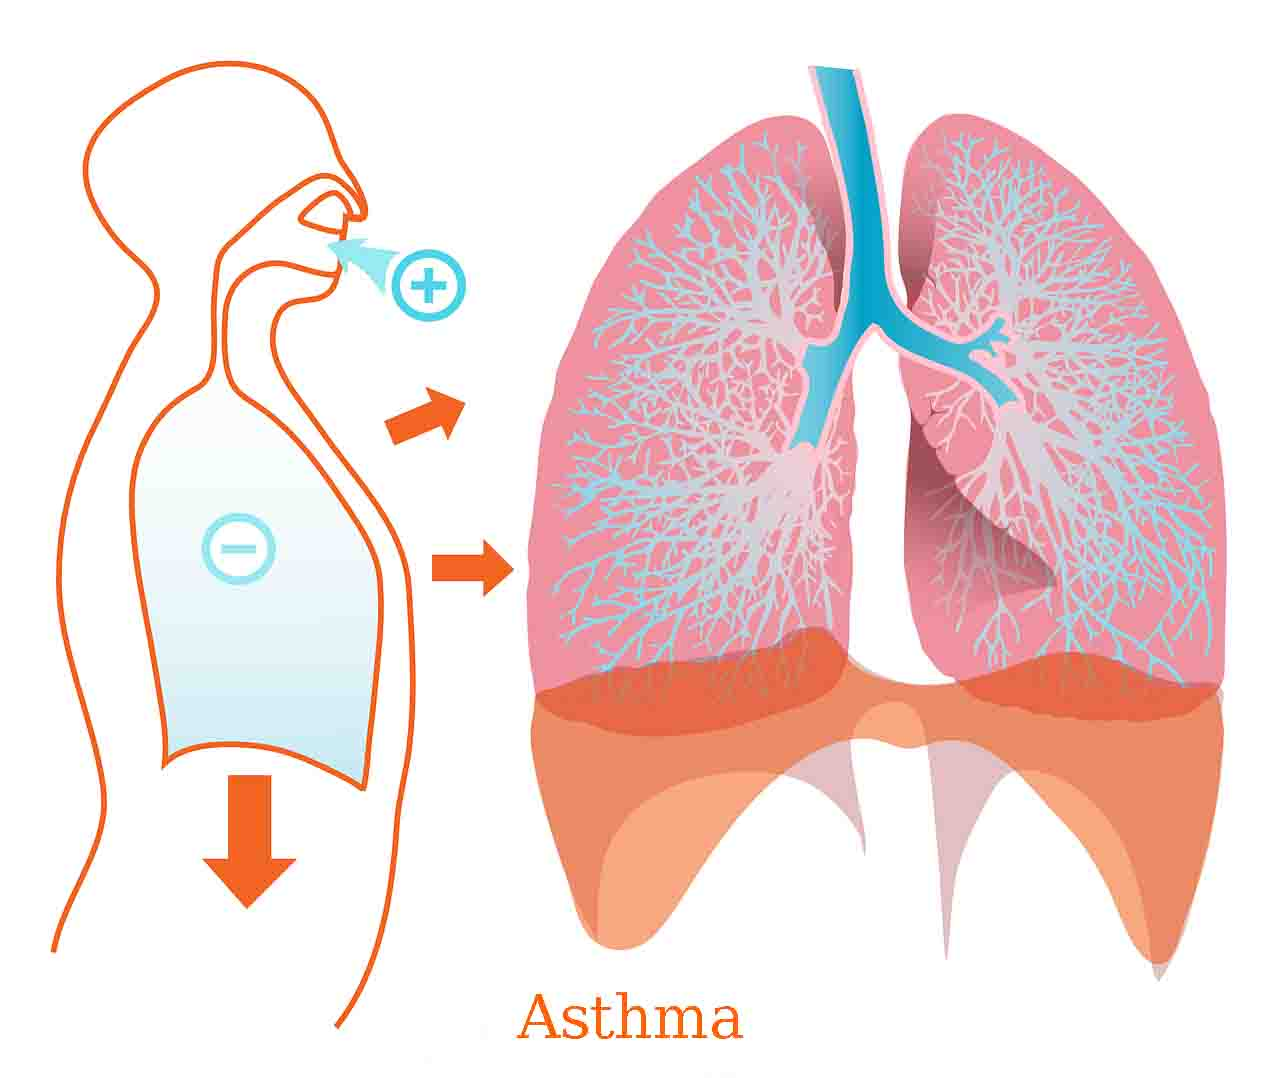 Asthma , Asthma remedies, asthma medications asthma in children, asthma triggers, asthma attack, diagnosis with asthma,best asthma remedies